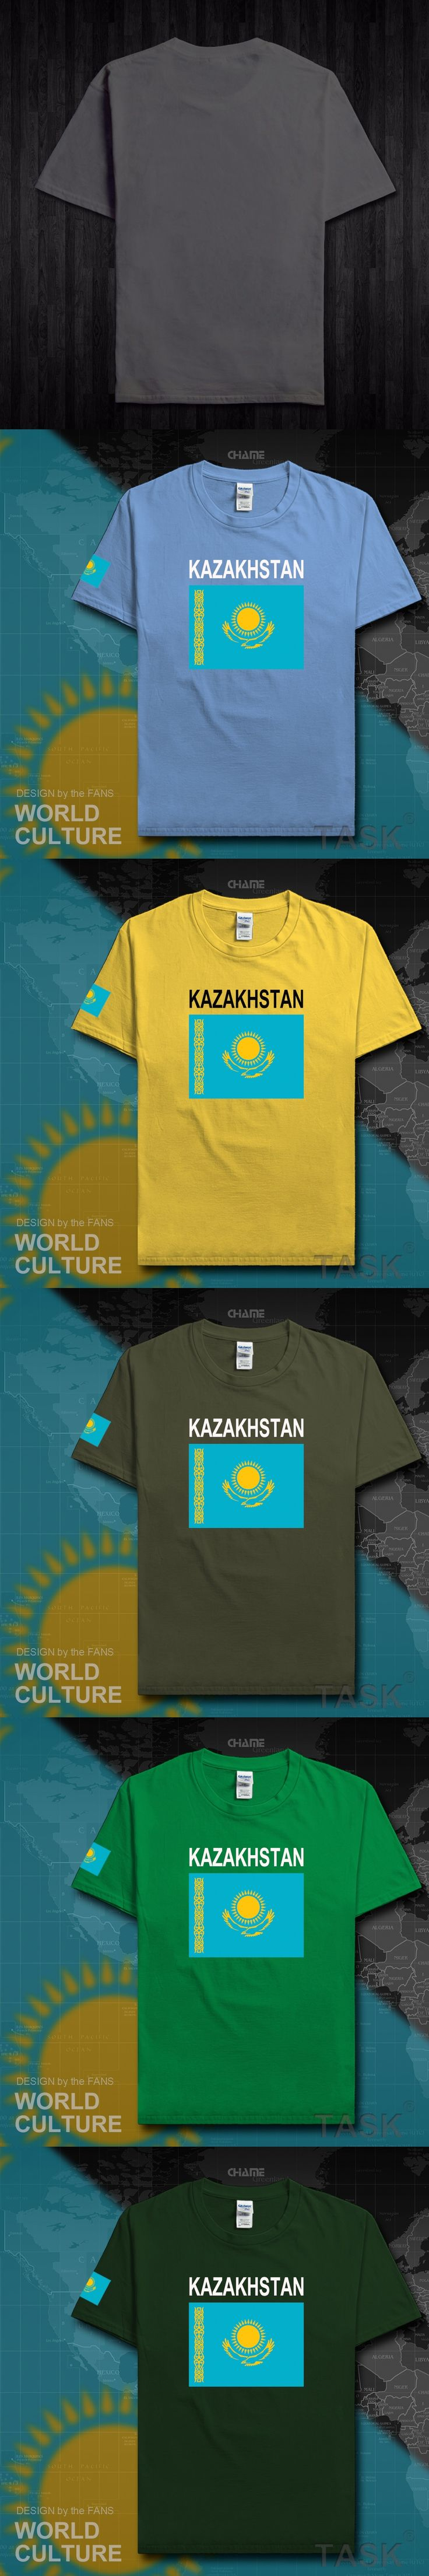 Kazakhstan men t shirt 2017 jerseys nation team tshirt tops t-shirt crossfit Kazakh clothing tees country flag KZ Kazakhstani